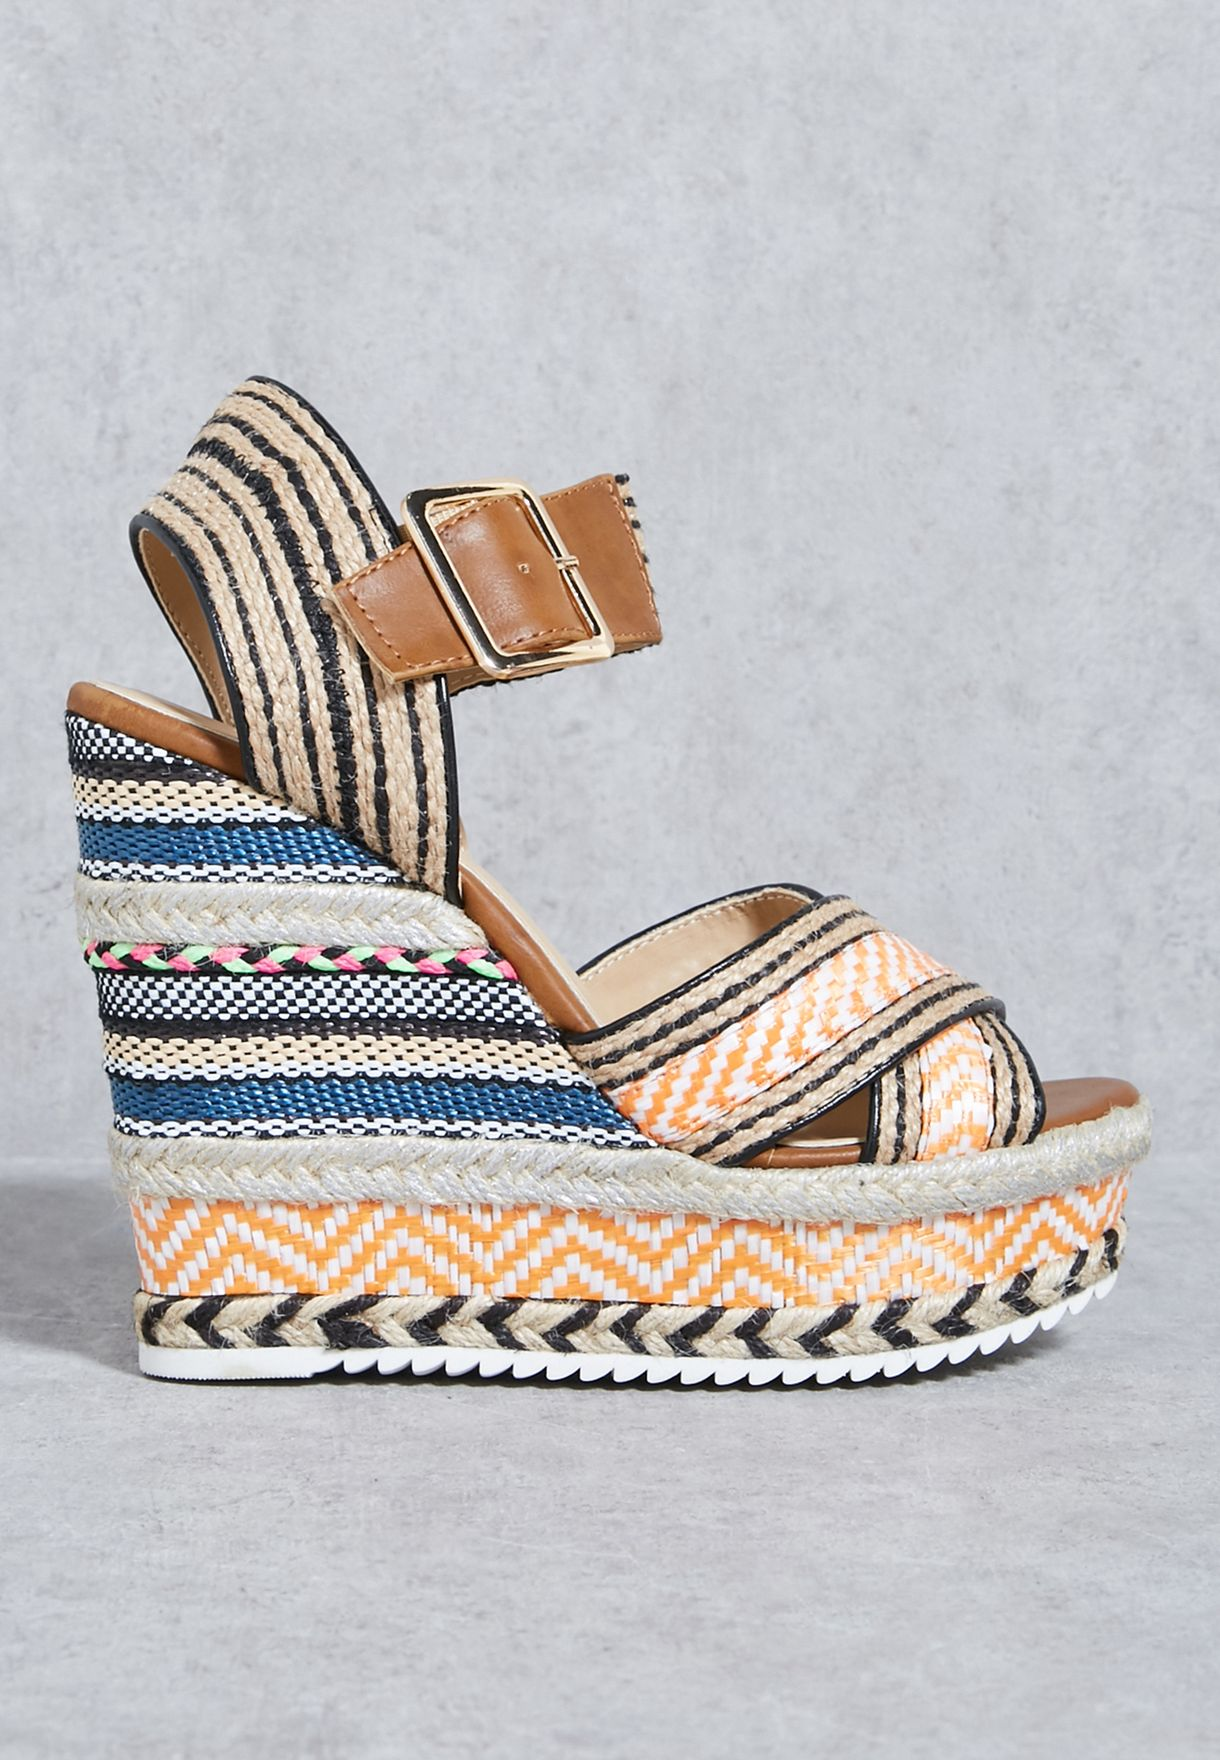 4920fae7a661 Shop Coco multicolor Wedge sandals ROSA 971 for Women in UAE ...